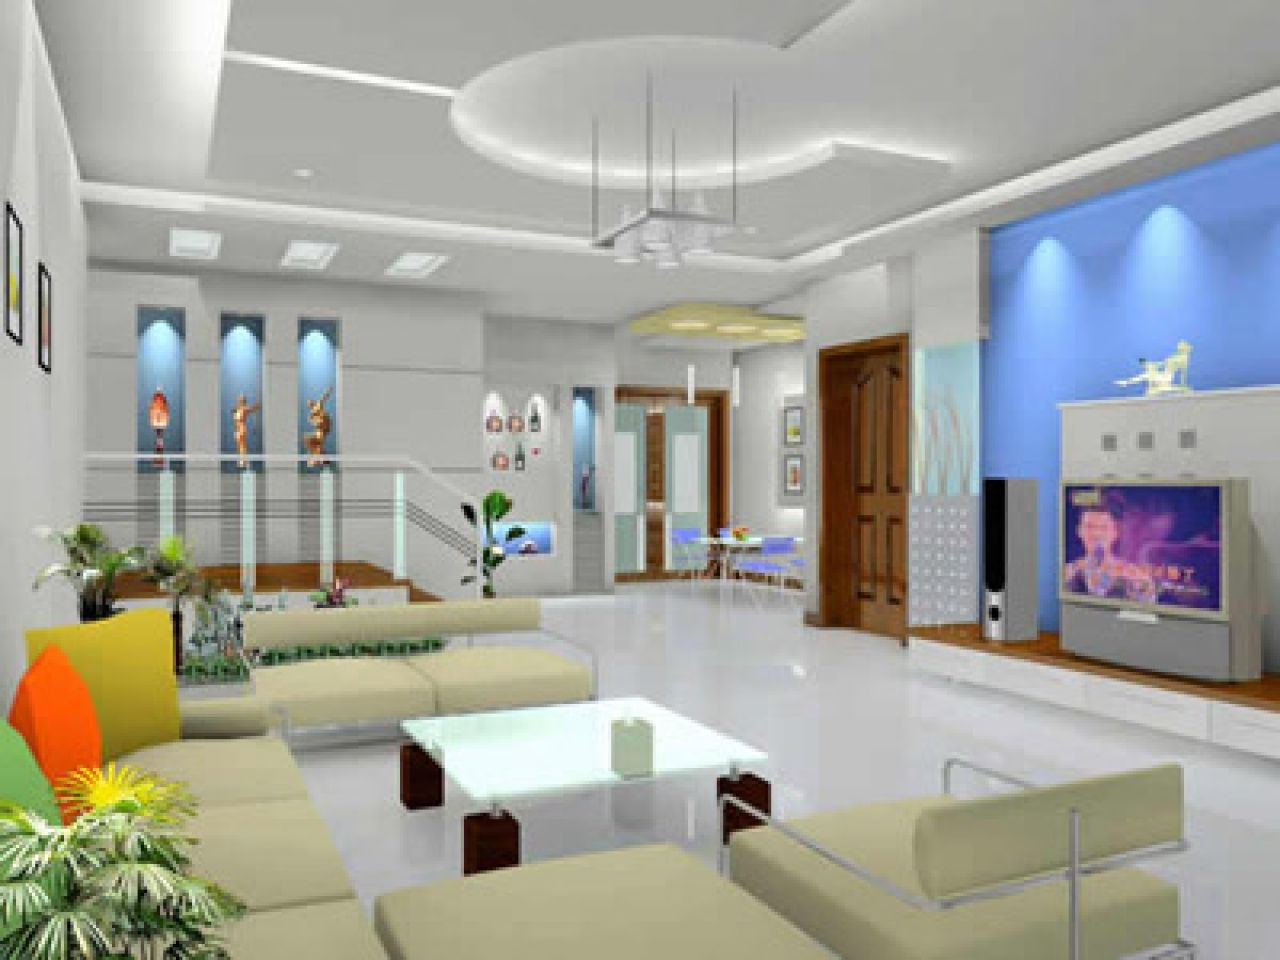 Thated roof bungalow house interior designs bungalow house